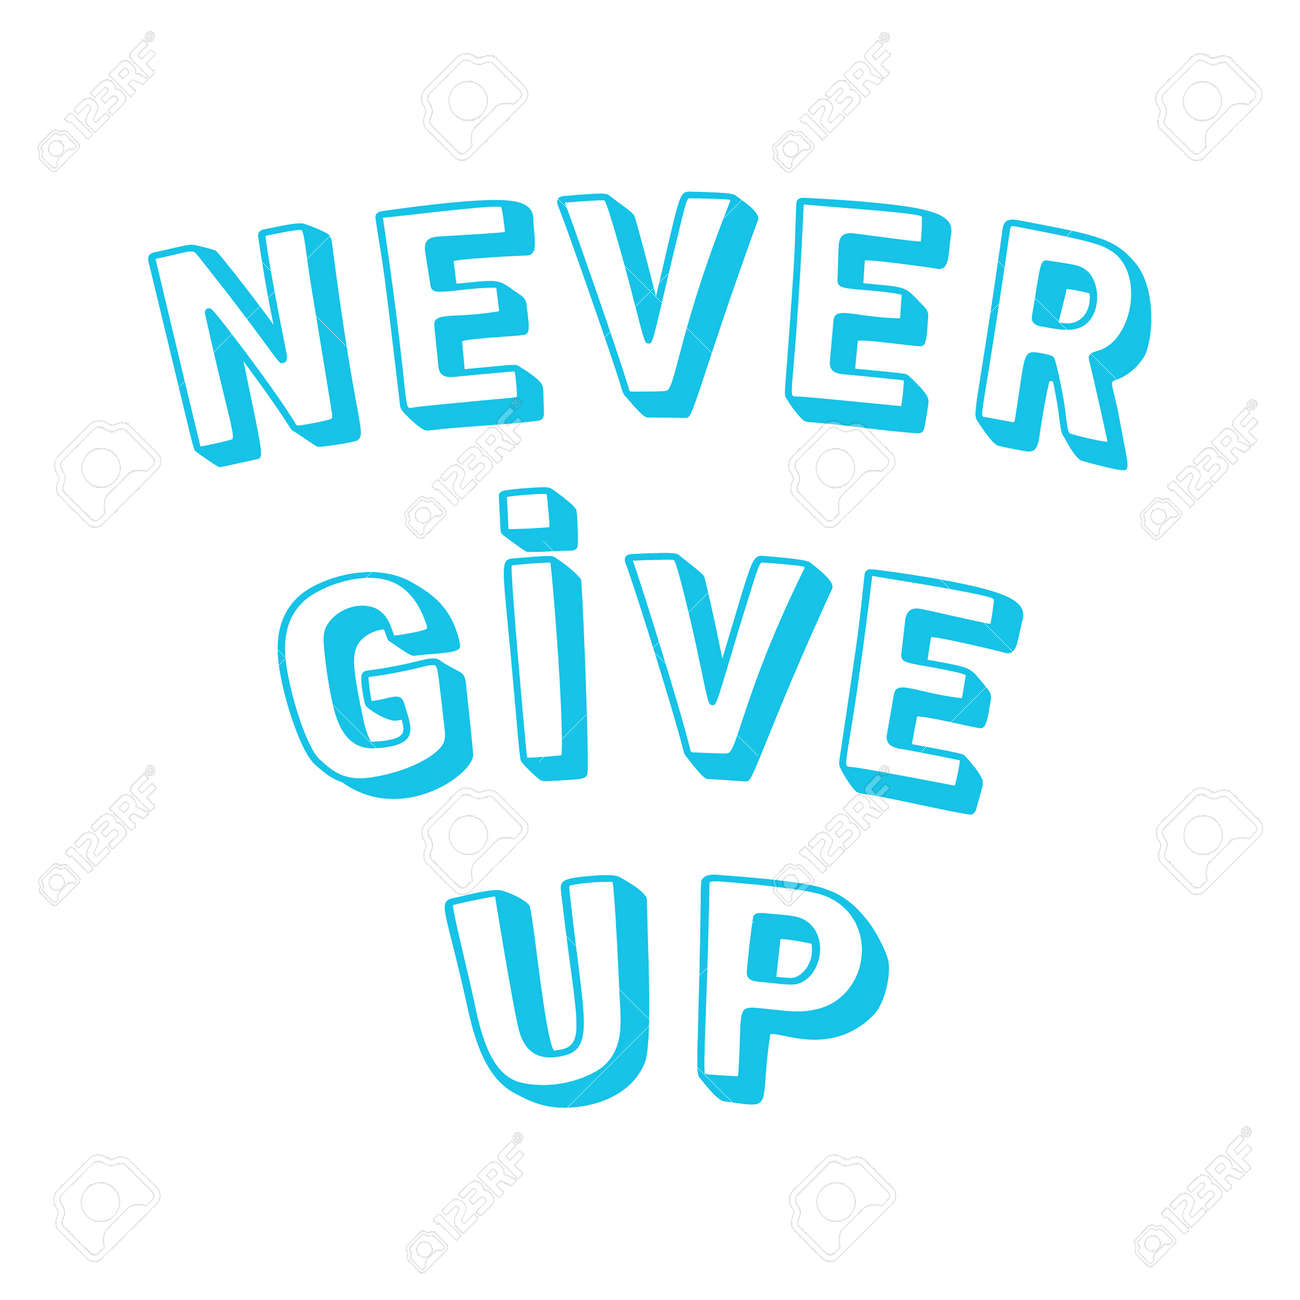 Never give up. - 172797810